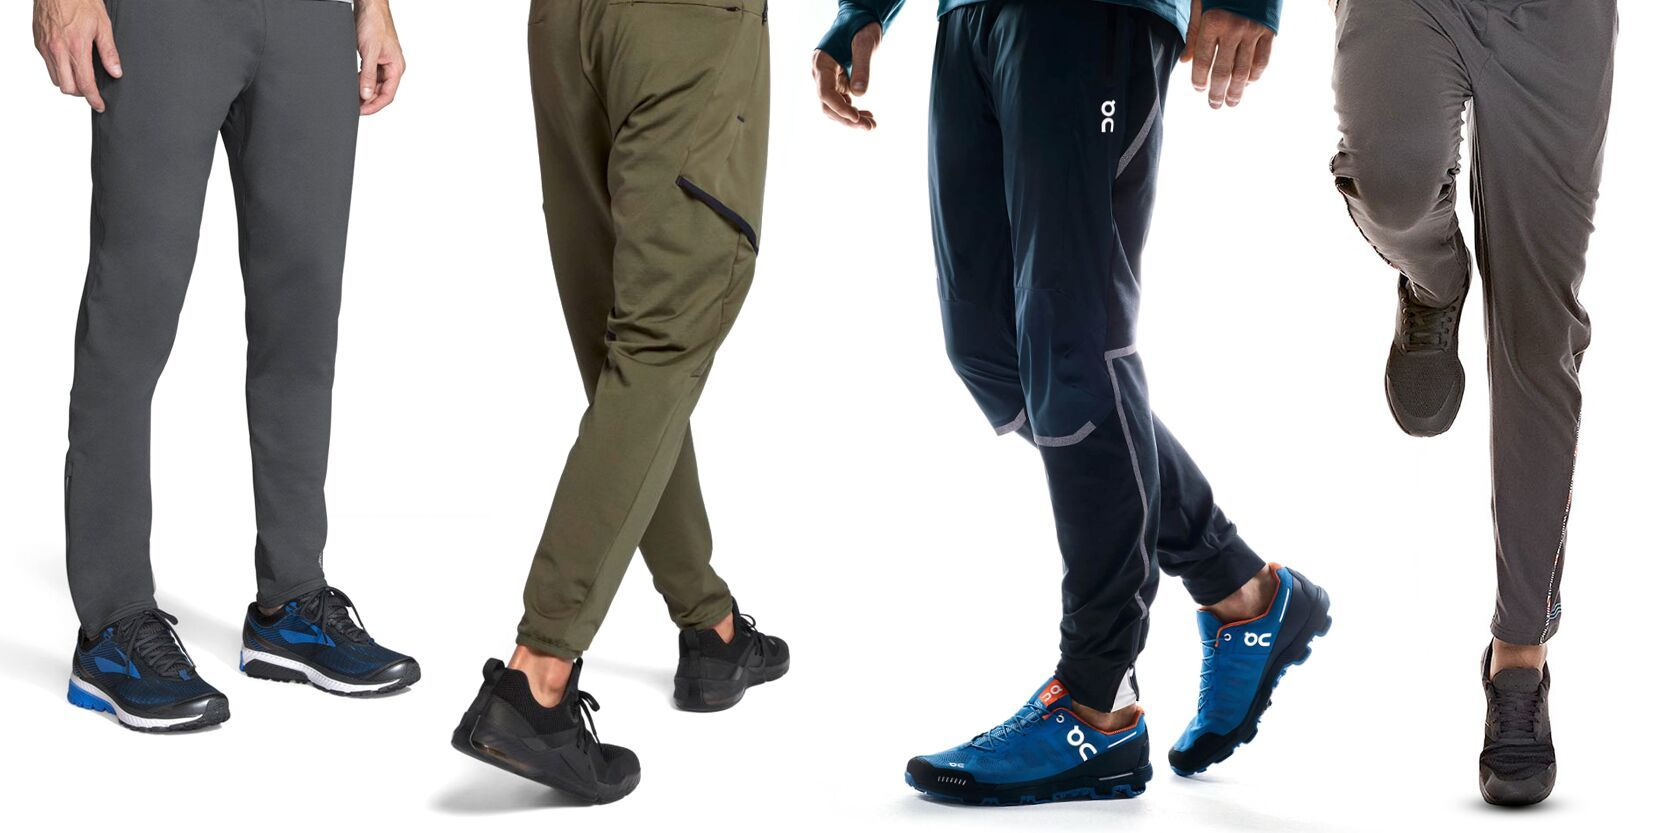 8 Men's Workout Pants for When You're Tired of Running in Tights